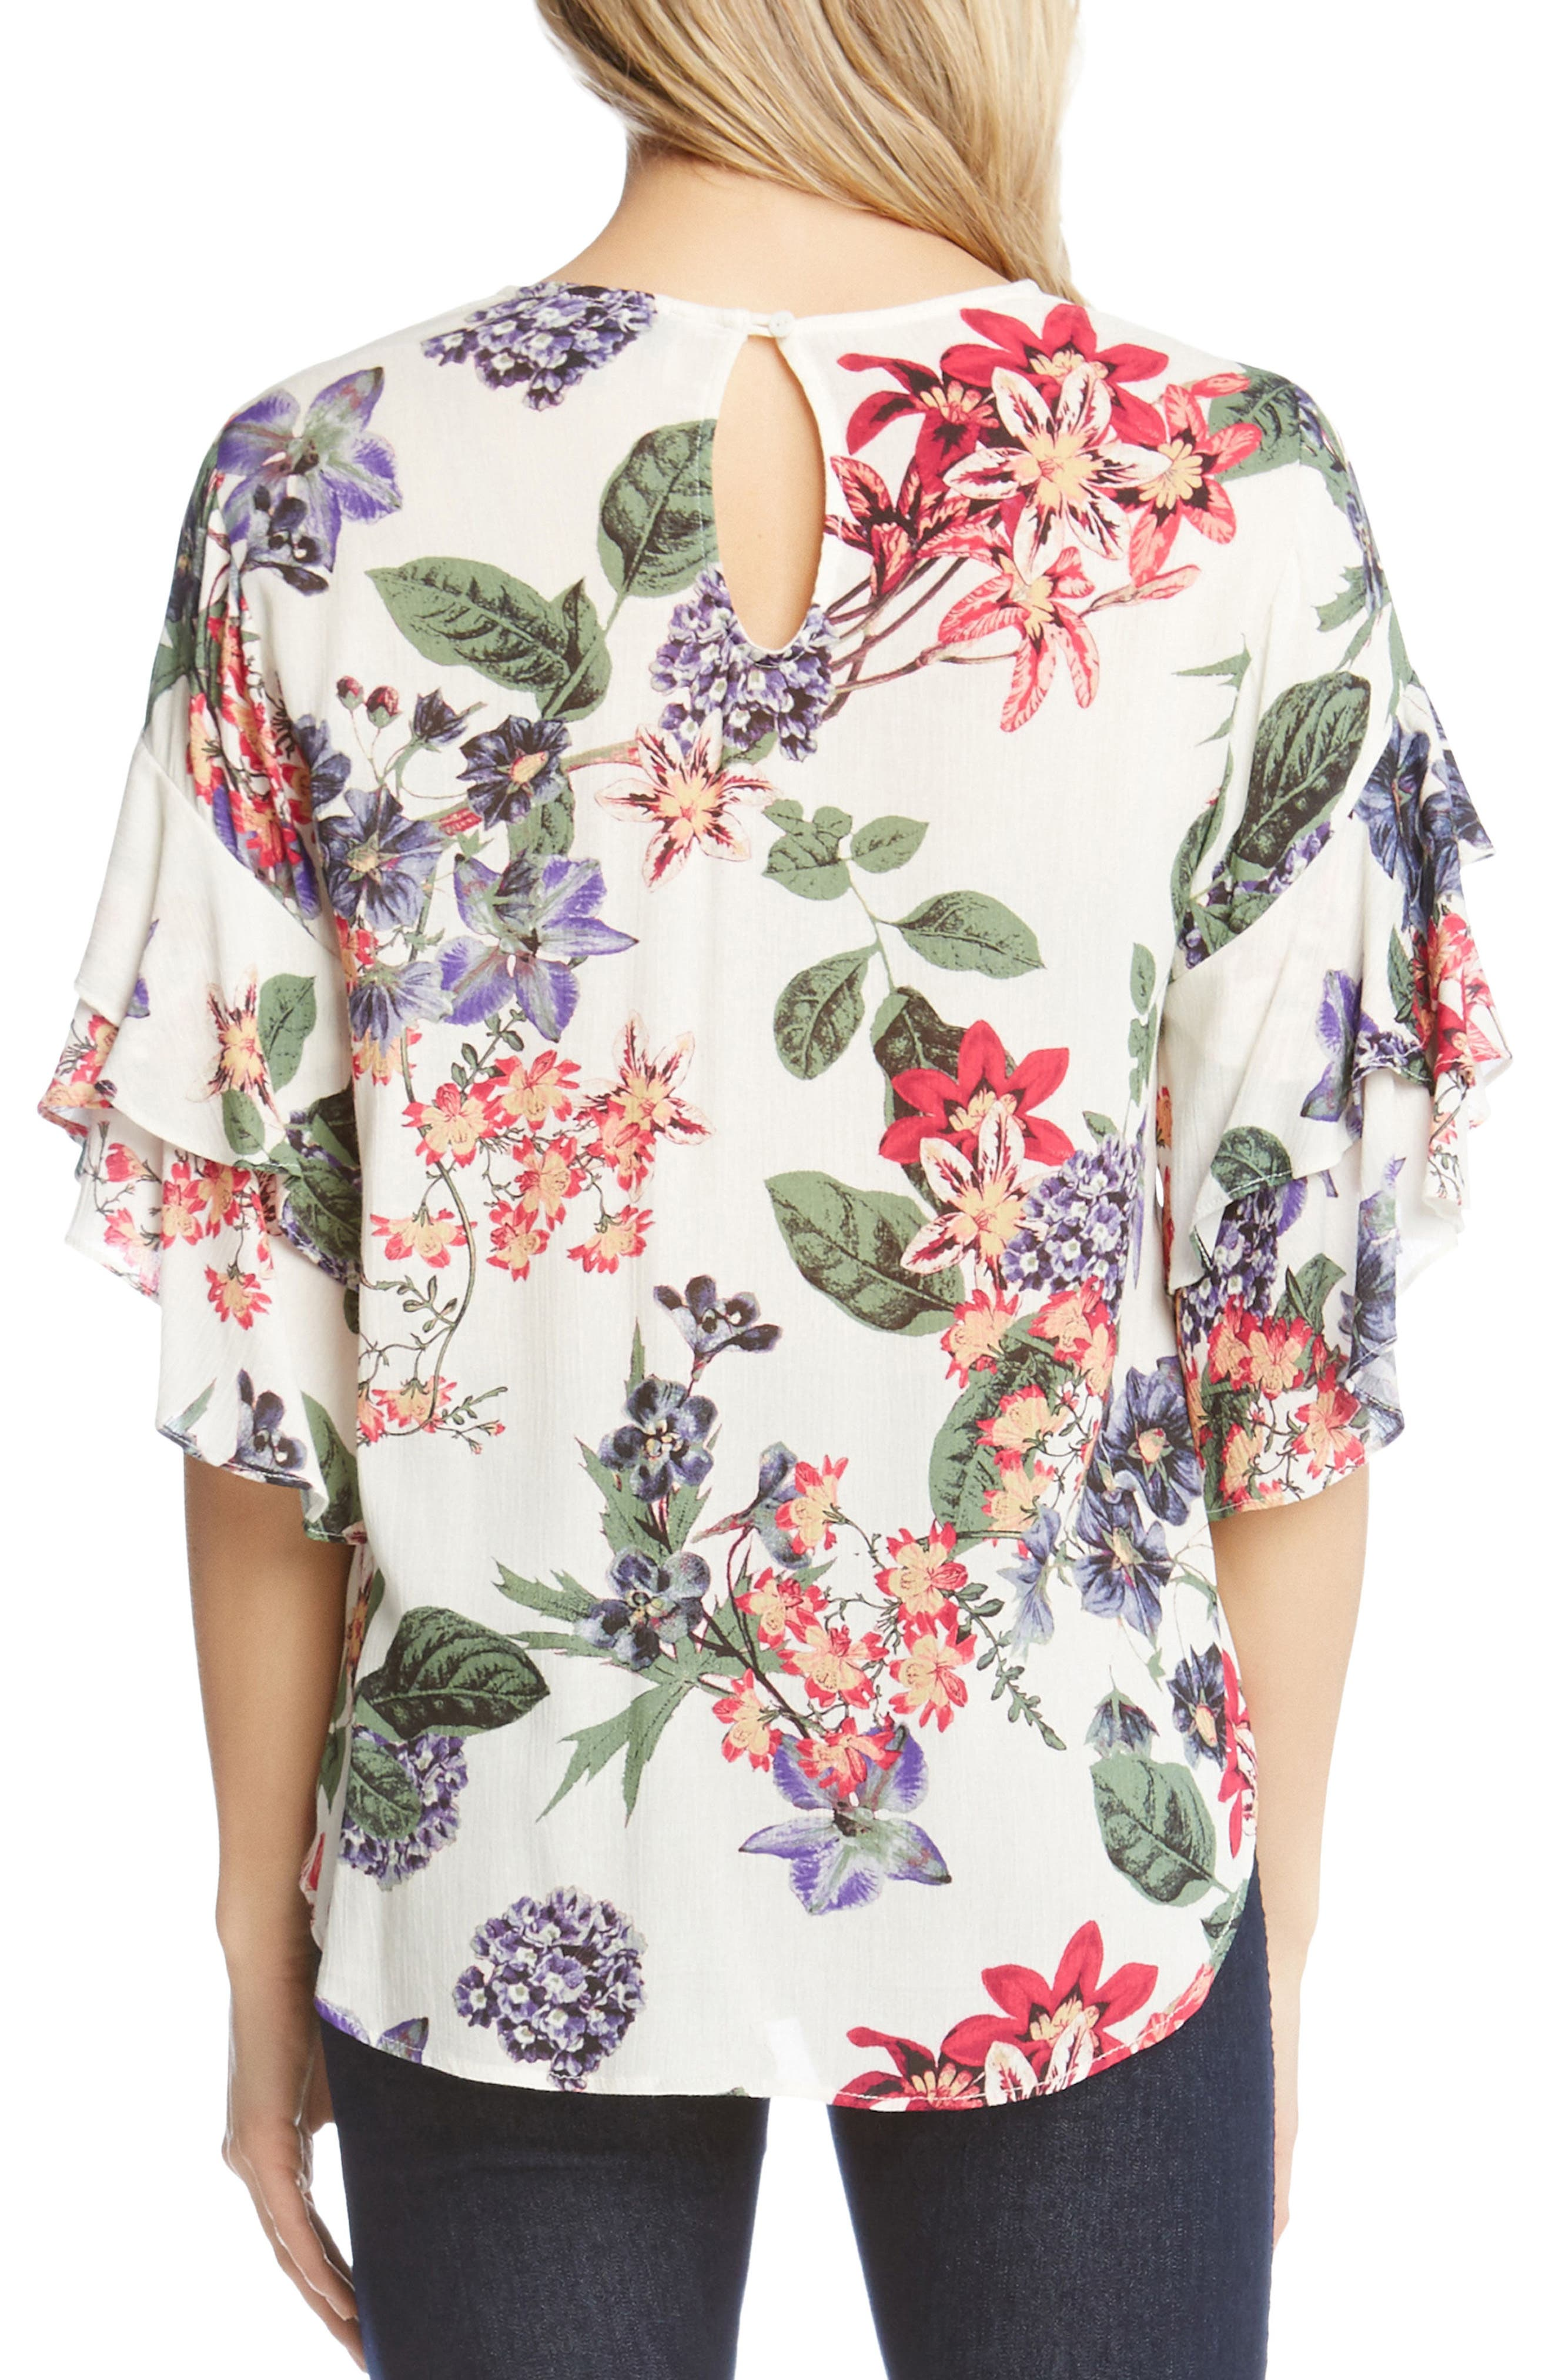 Ruffle Sleeve Floral Top,                             Alternate thumbnail 2, color,                             160